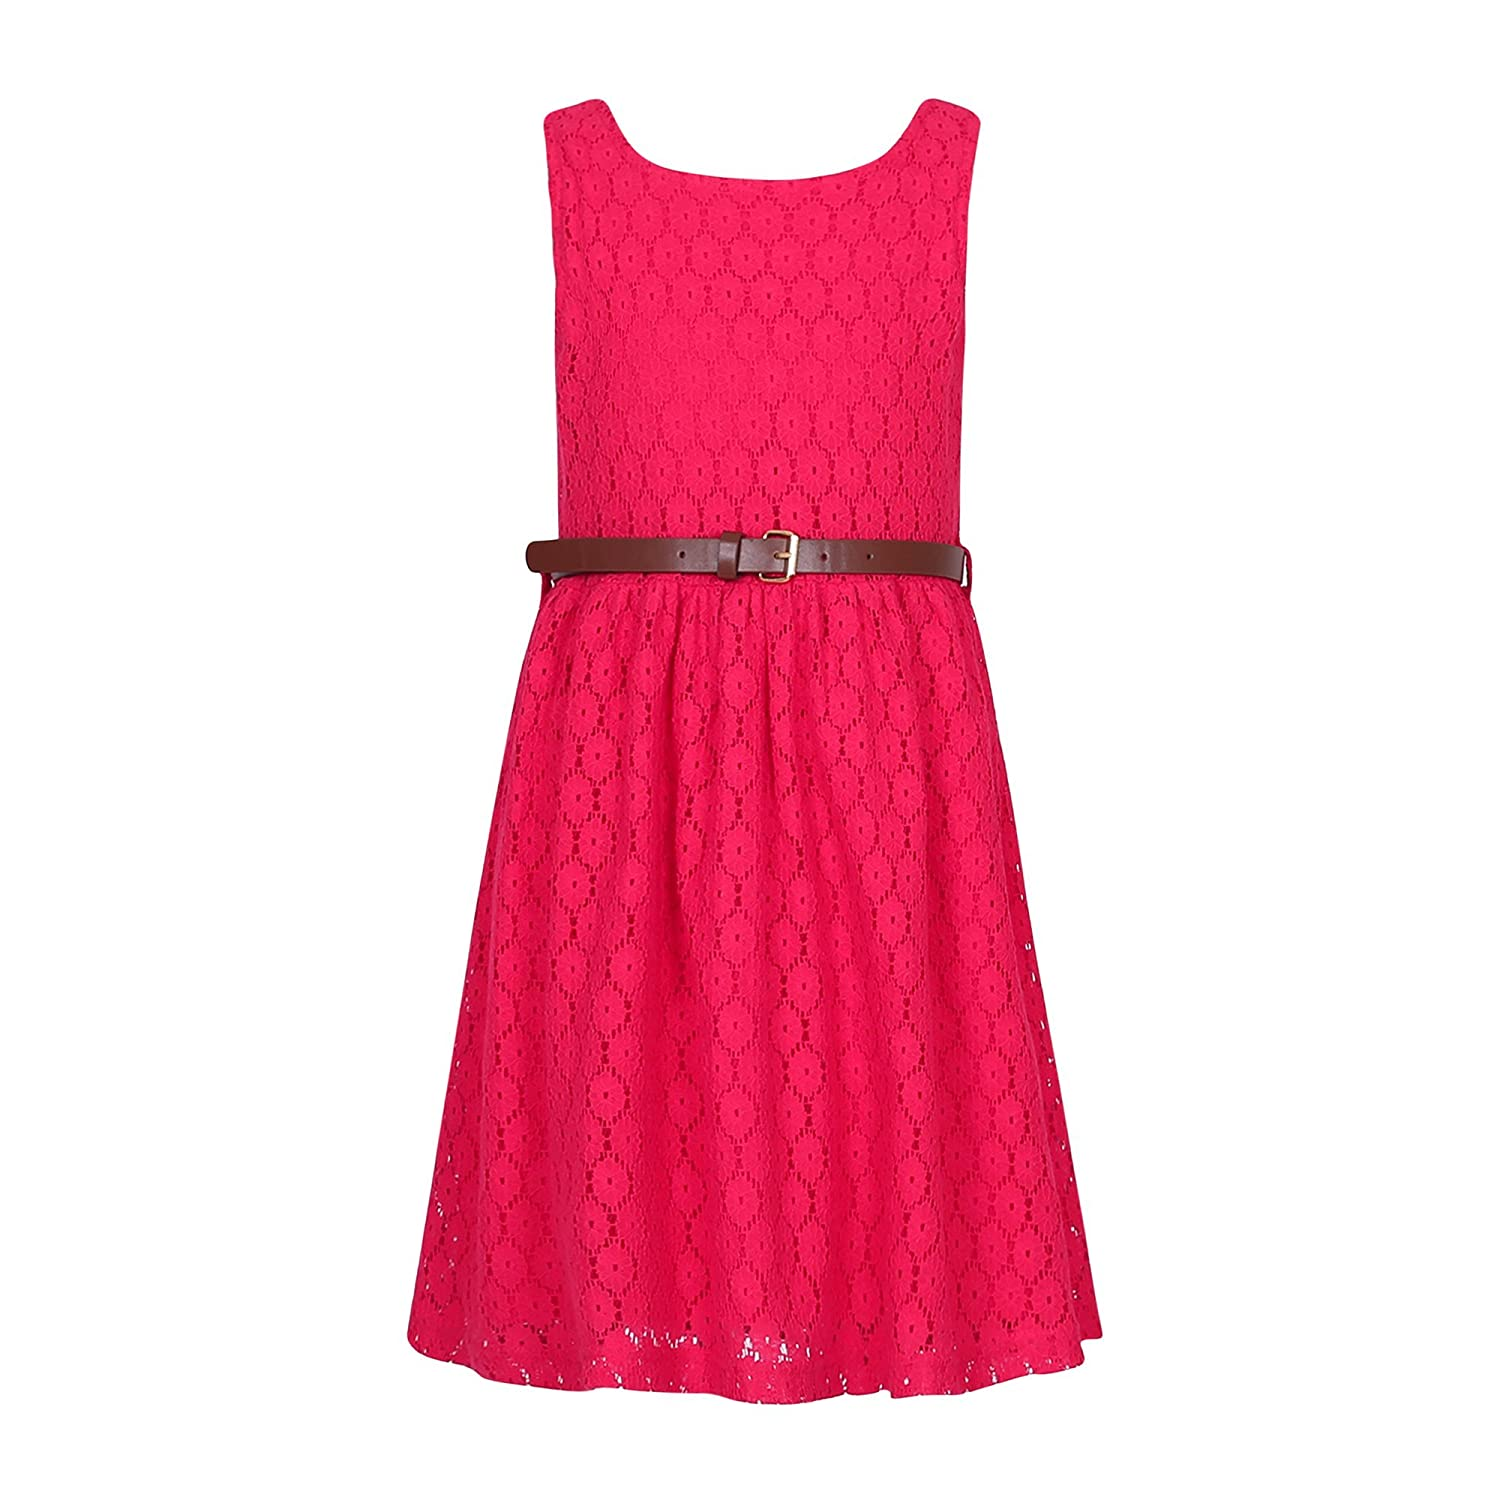 Richie House Girls' Sweet Lace Sleeveless Dress with Belt RH2588